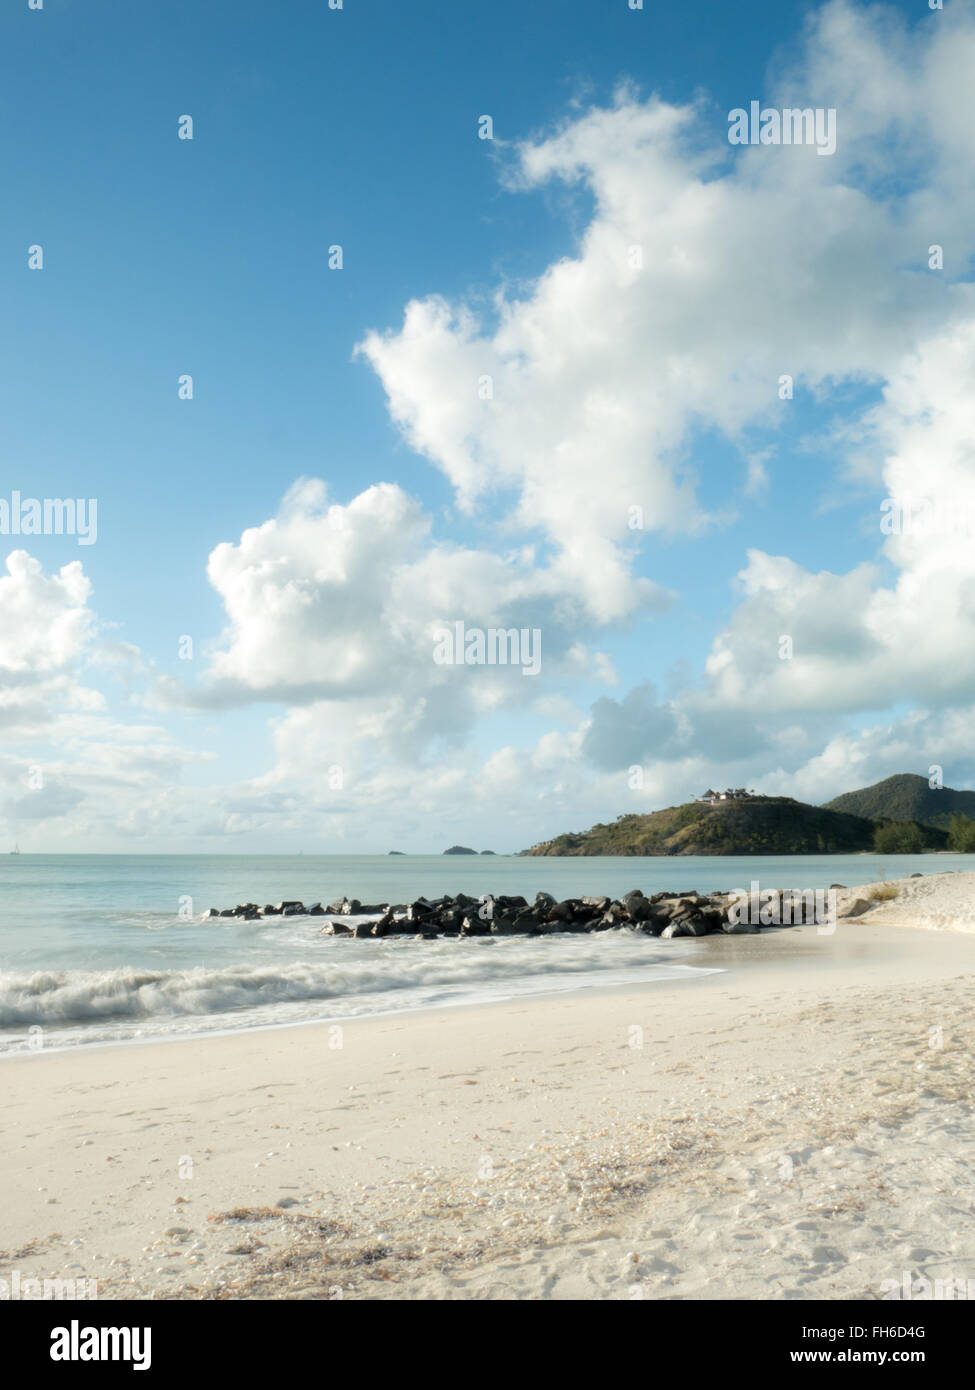 Caribbean beach scenery with turquoise water and hills in the background - Stock Image